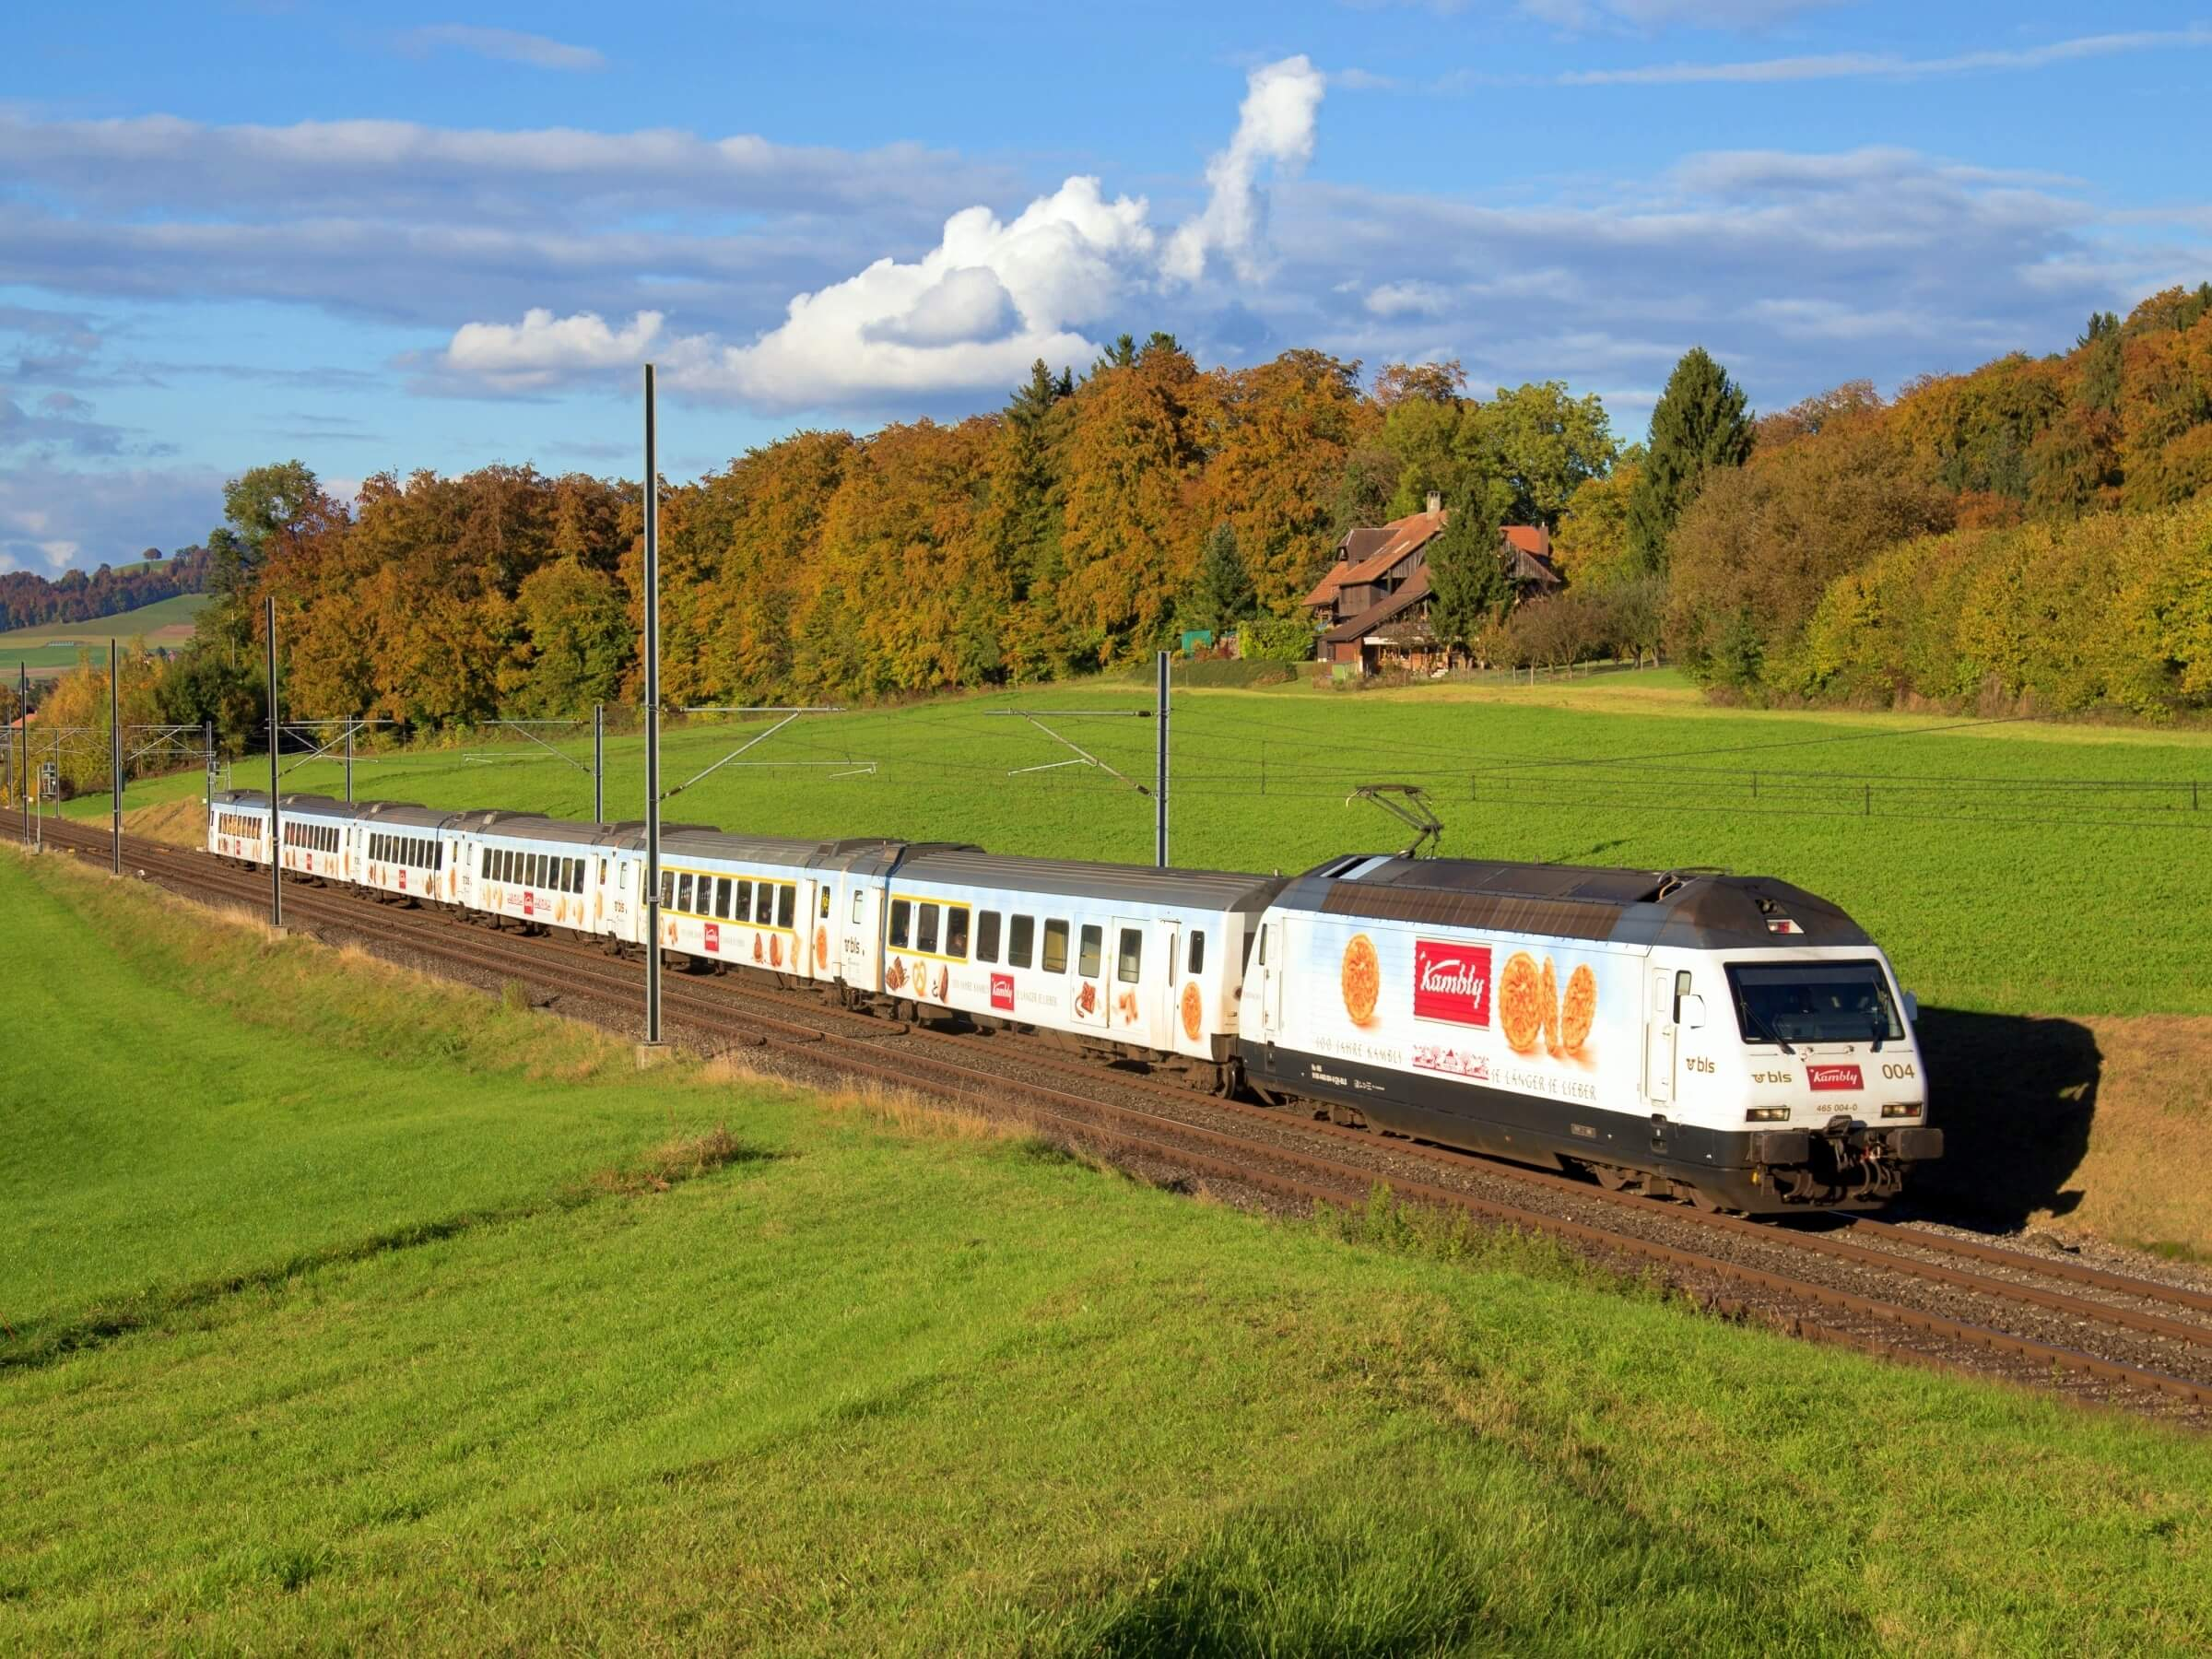 The Kambly Express runs twice a day between Bern and Lucerne.